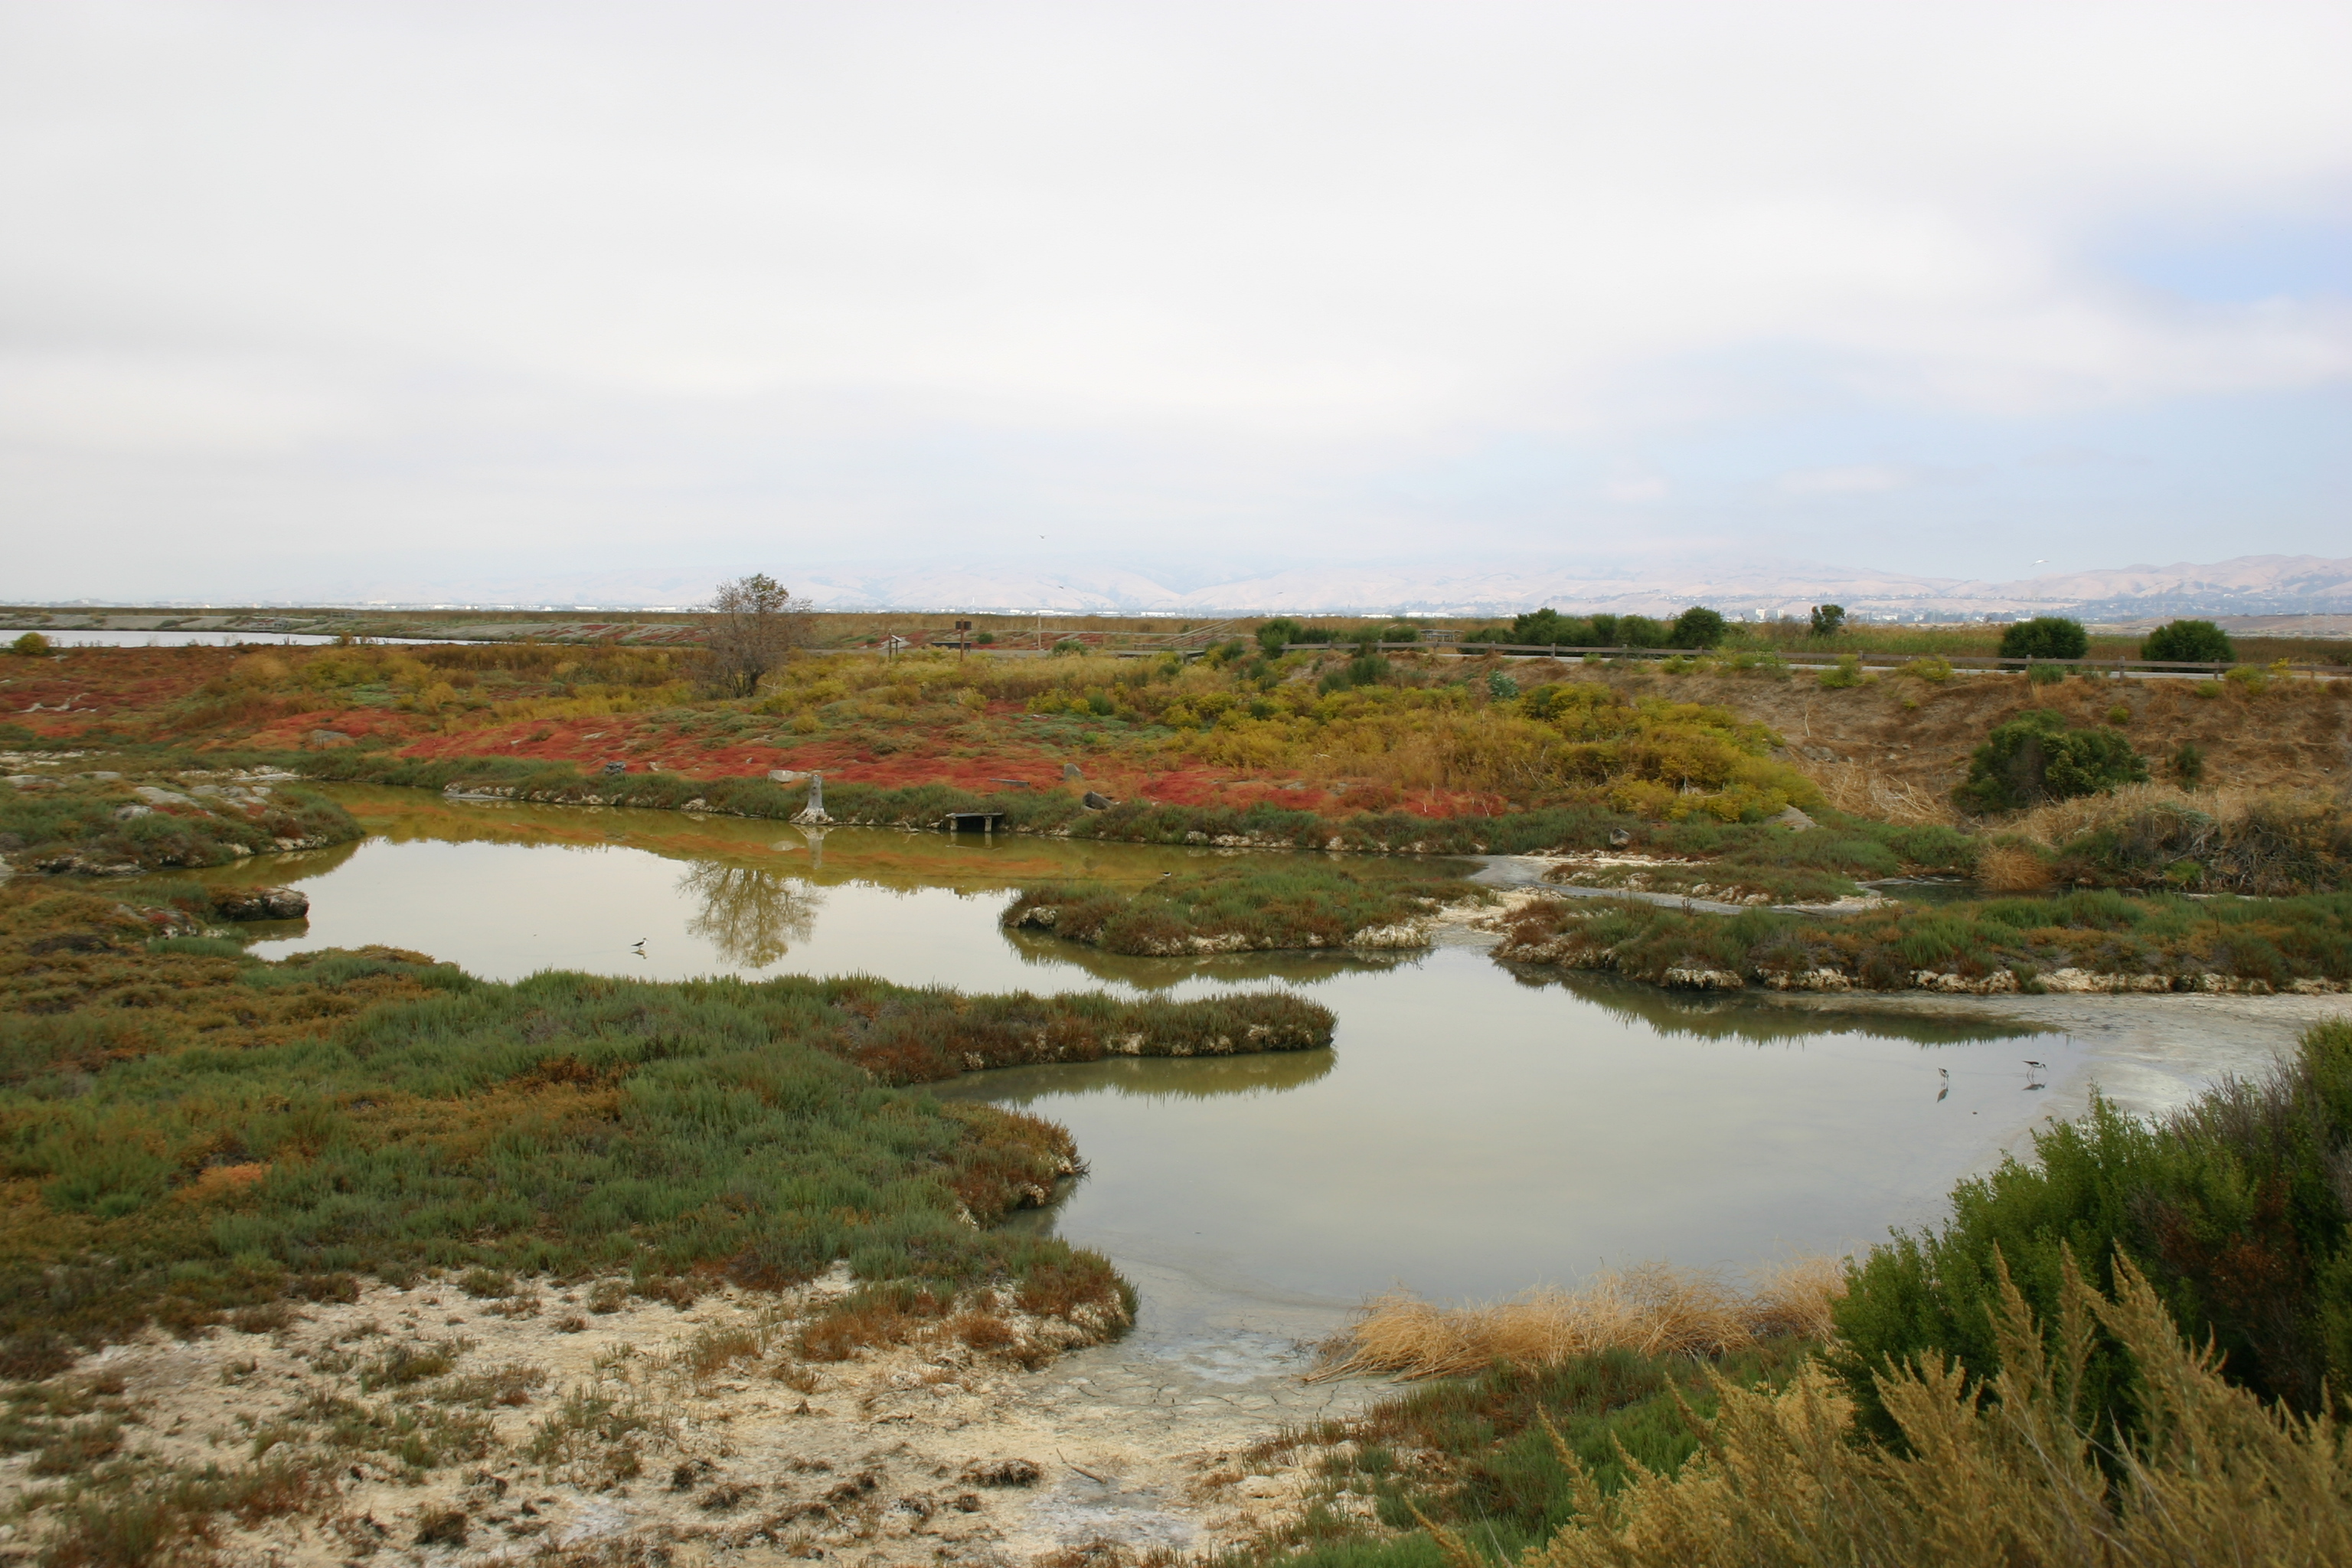 Marsh water curves through a colorful landscape.